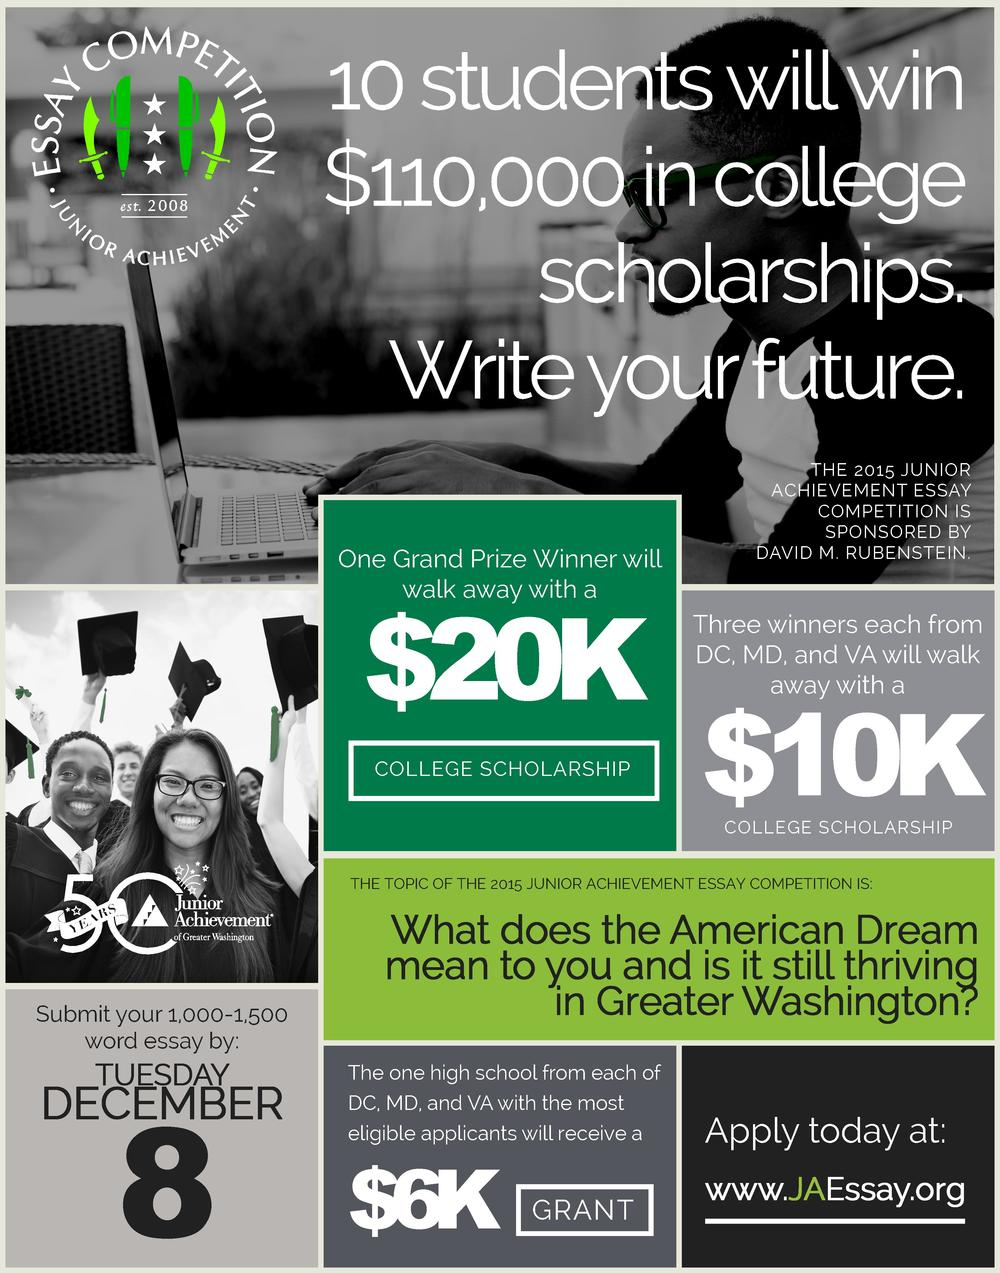 Click here to download a PDF of the 2015 Junior Achievement Essay Competition flyer.